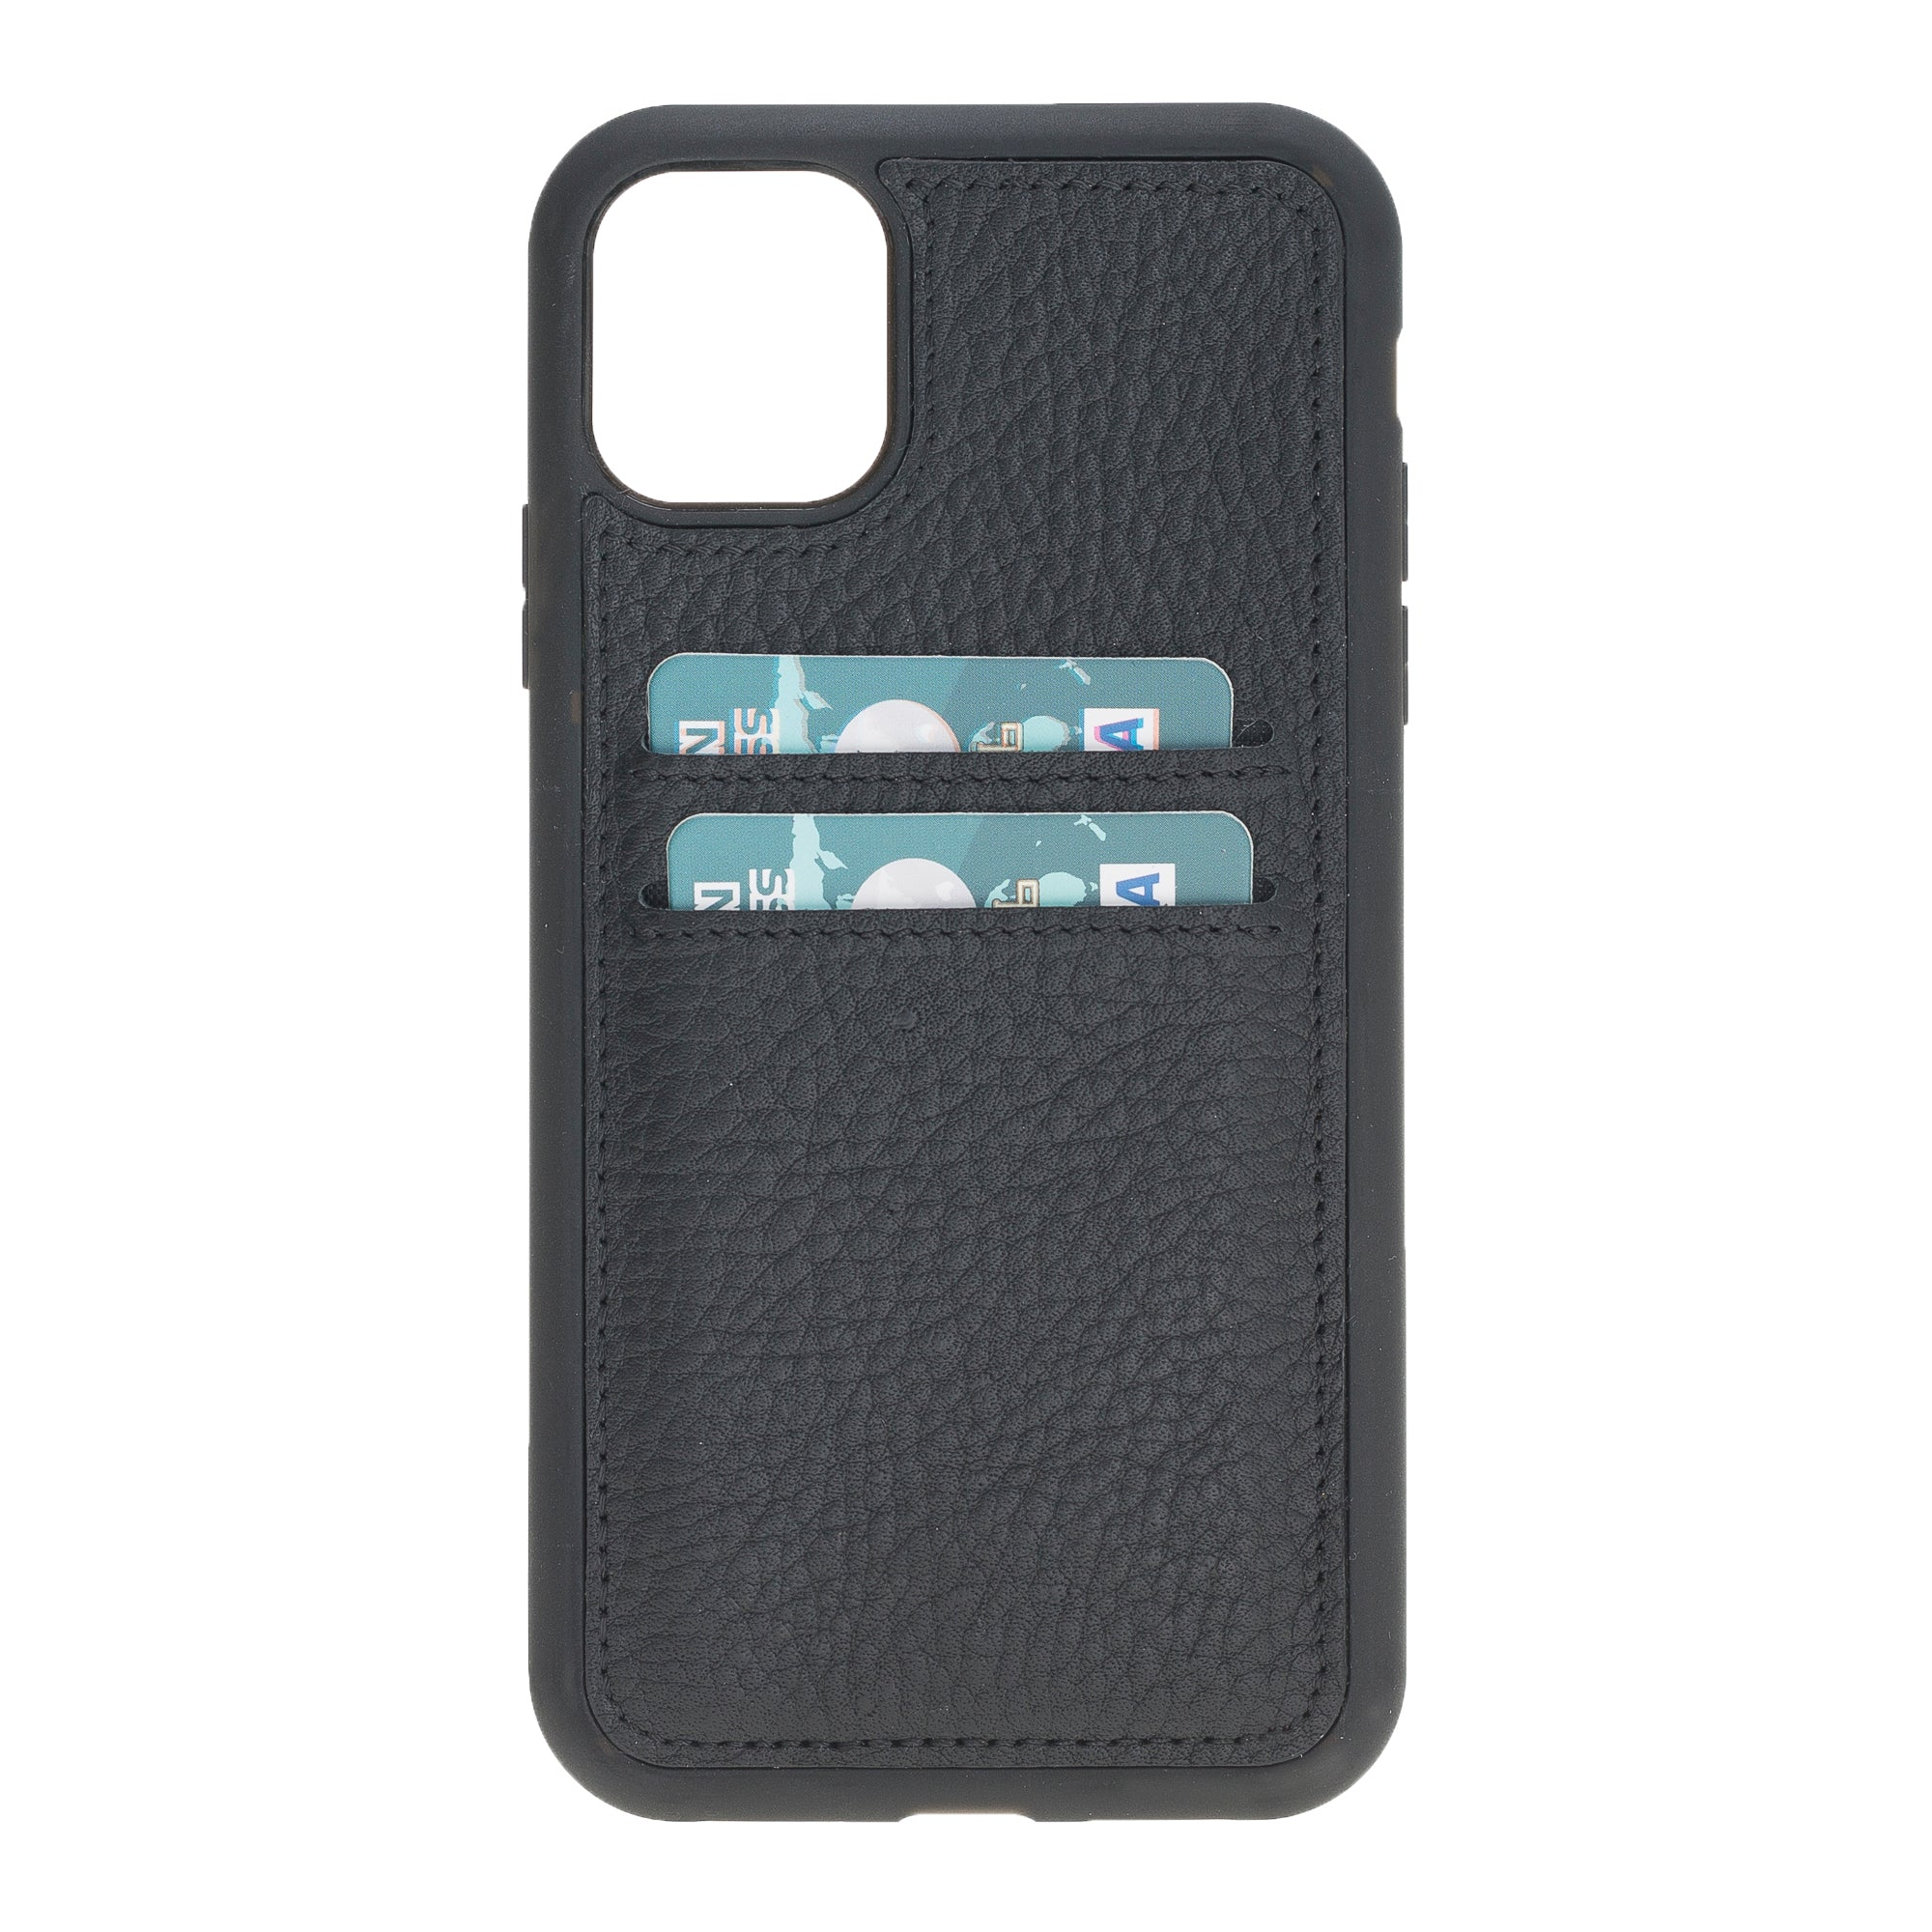 "Black Apple iPhone 11 (6.1"") Leather Case w/ Card Slots"